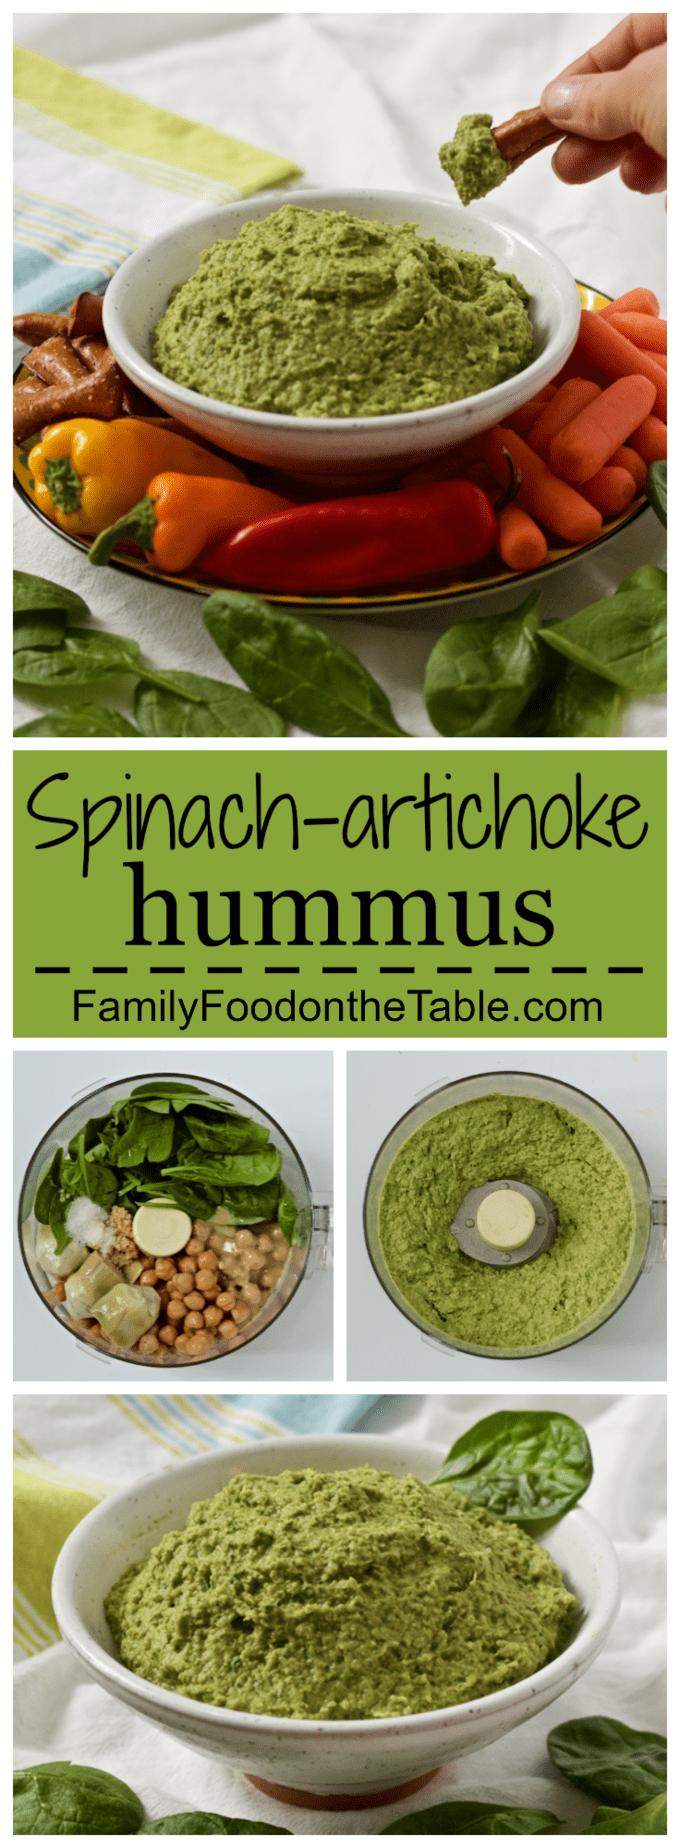 Spinach artichoke hummus - Family Food on the Table